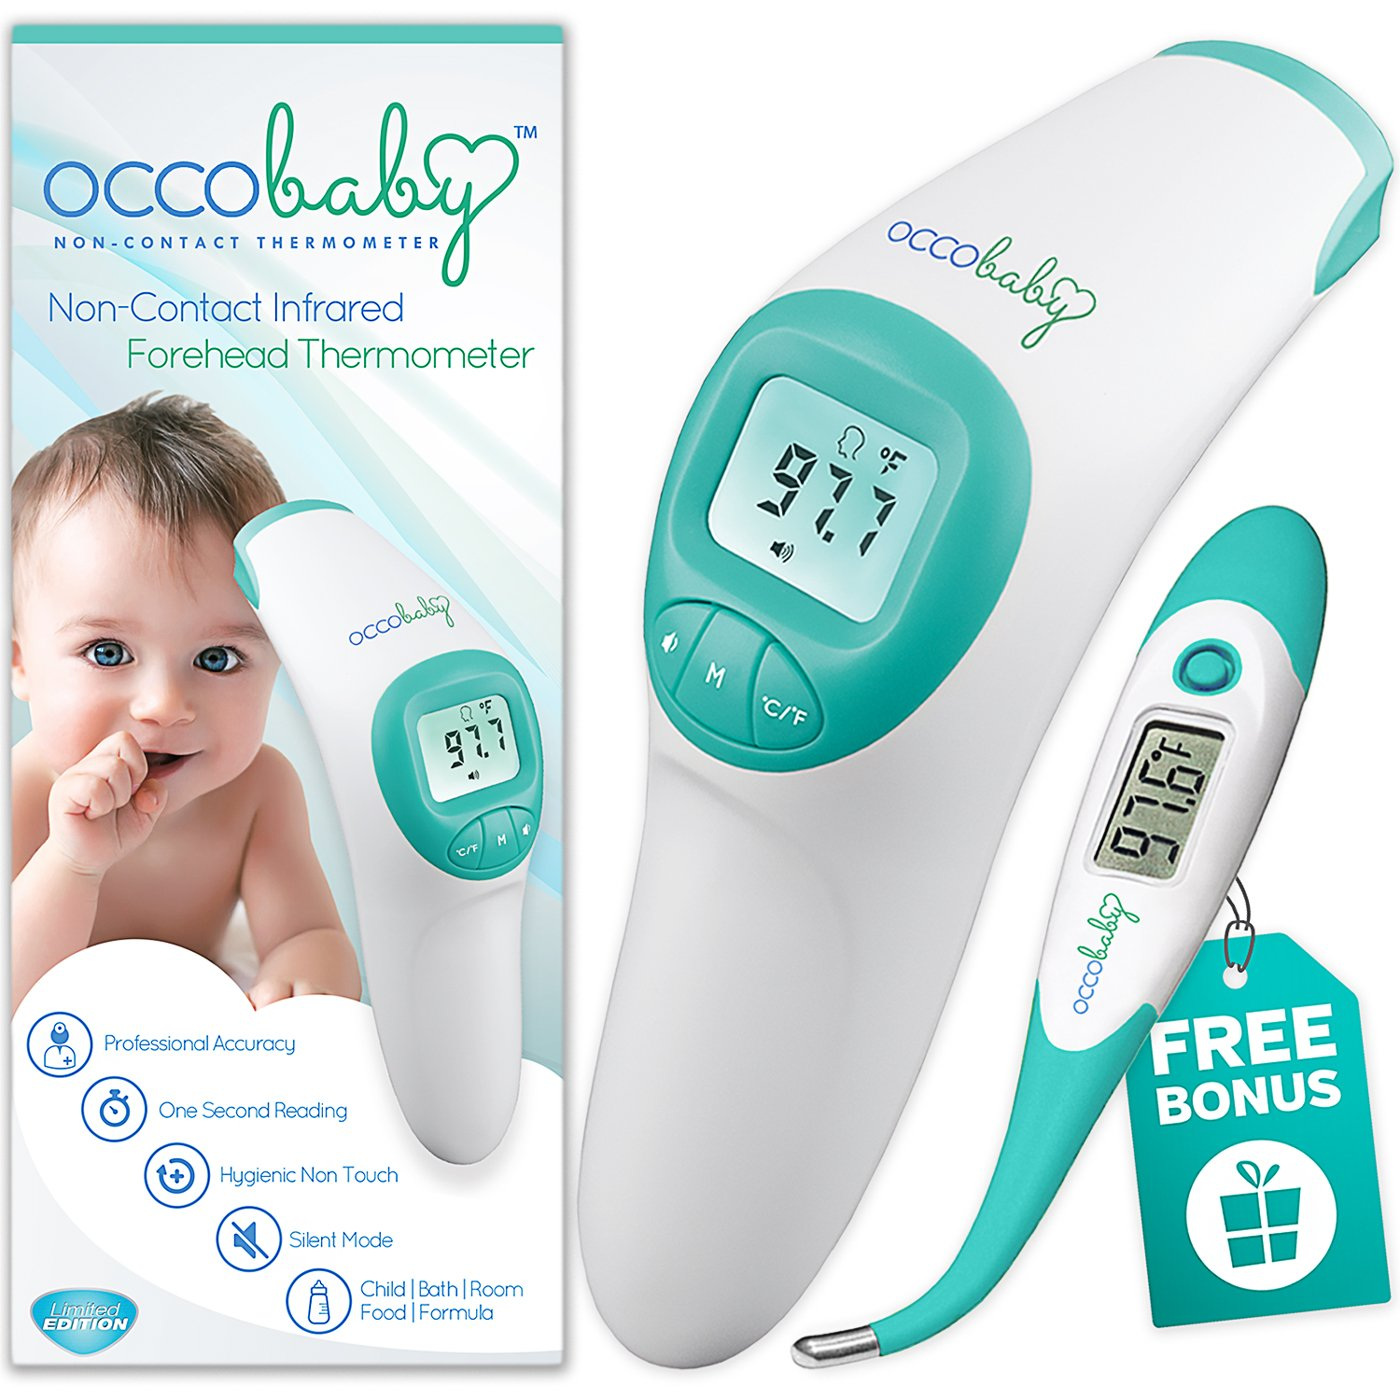 OCCObaby Clinical Forehead Baby Thermometer - Limited Edition with Flexible Tip Waterproof Digital Thermometer for Infants & Toddlers | Instant Read Non-Contact Infrared Scanner by OCCObaby